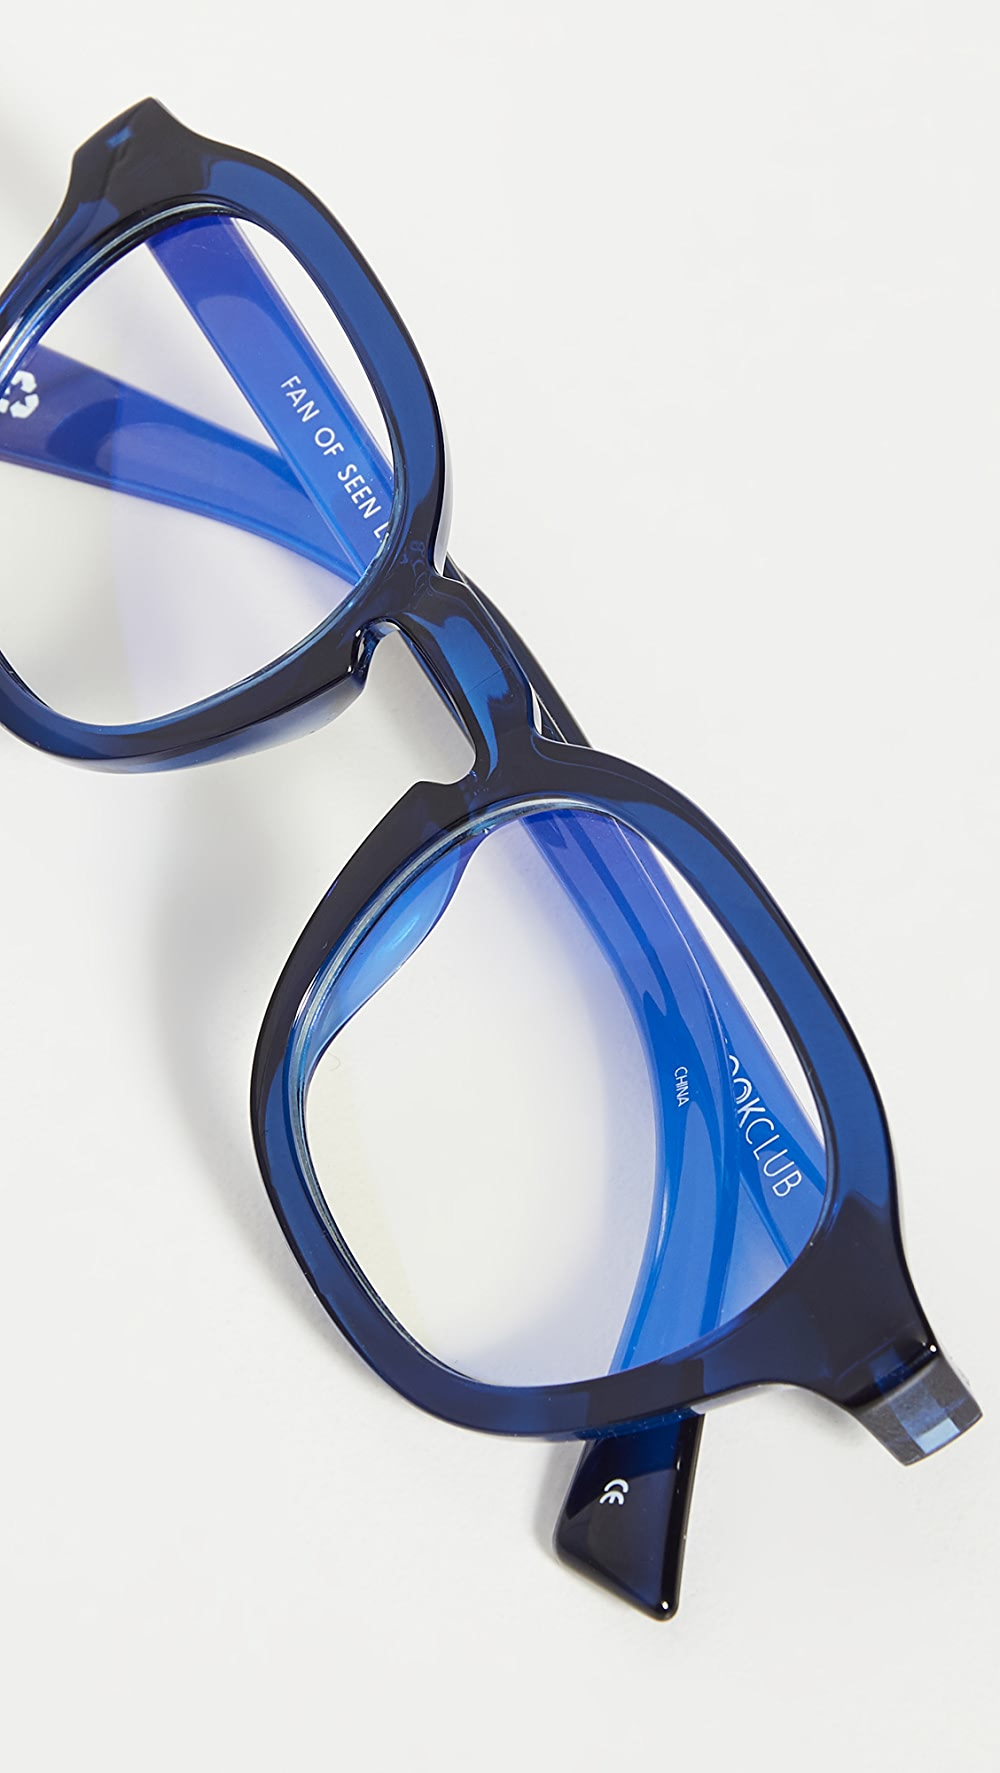 Alert The Book Club - Fan Of Seen Labels Blue Light Glasses Save 50-70%